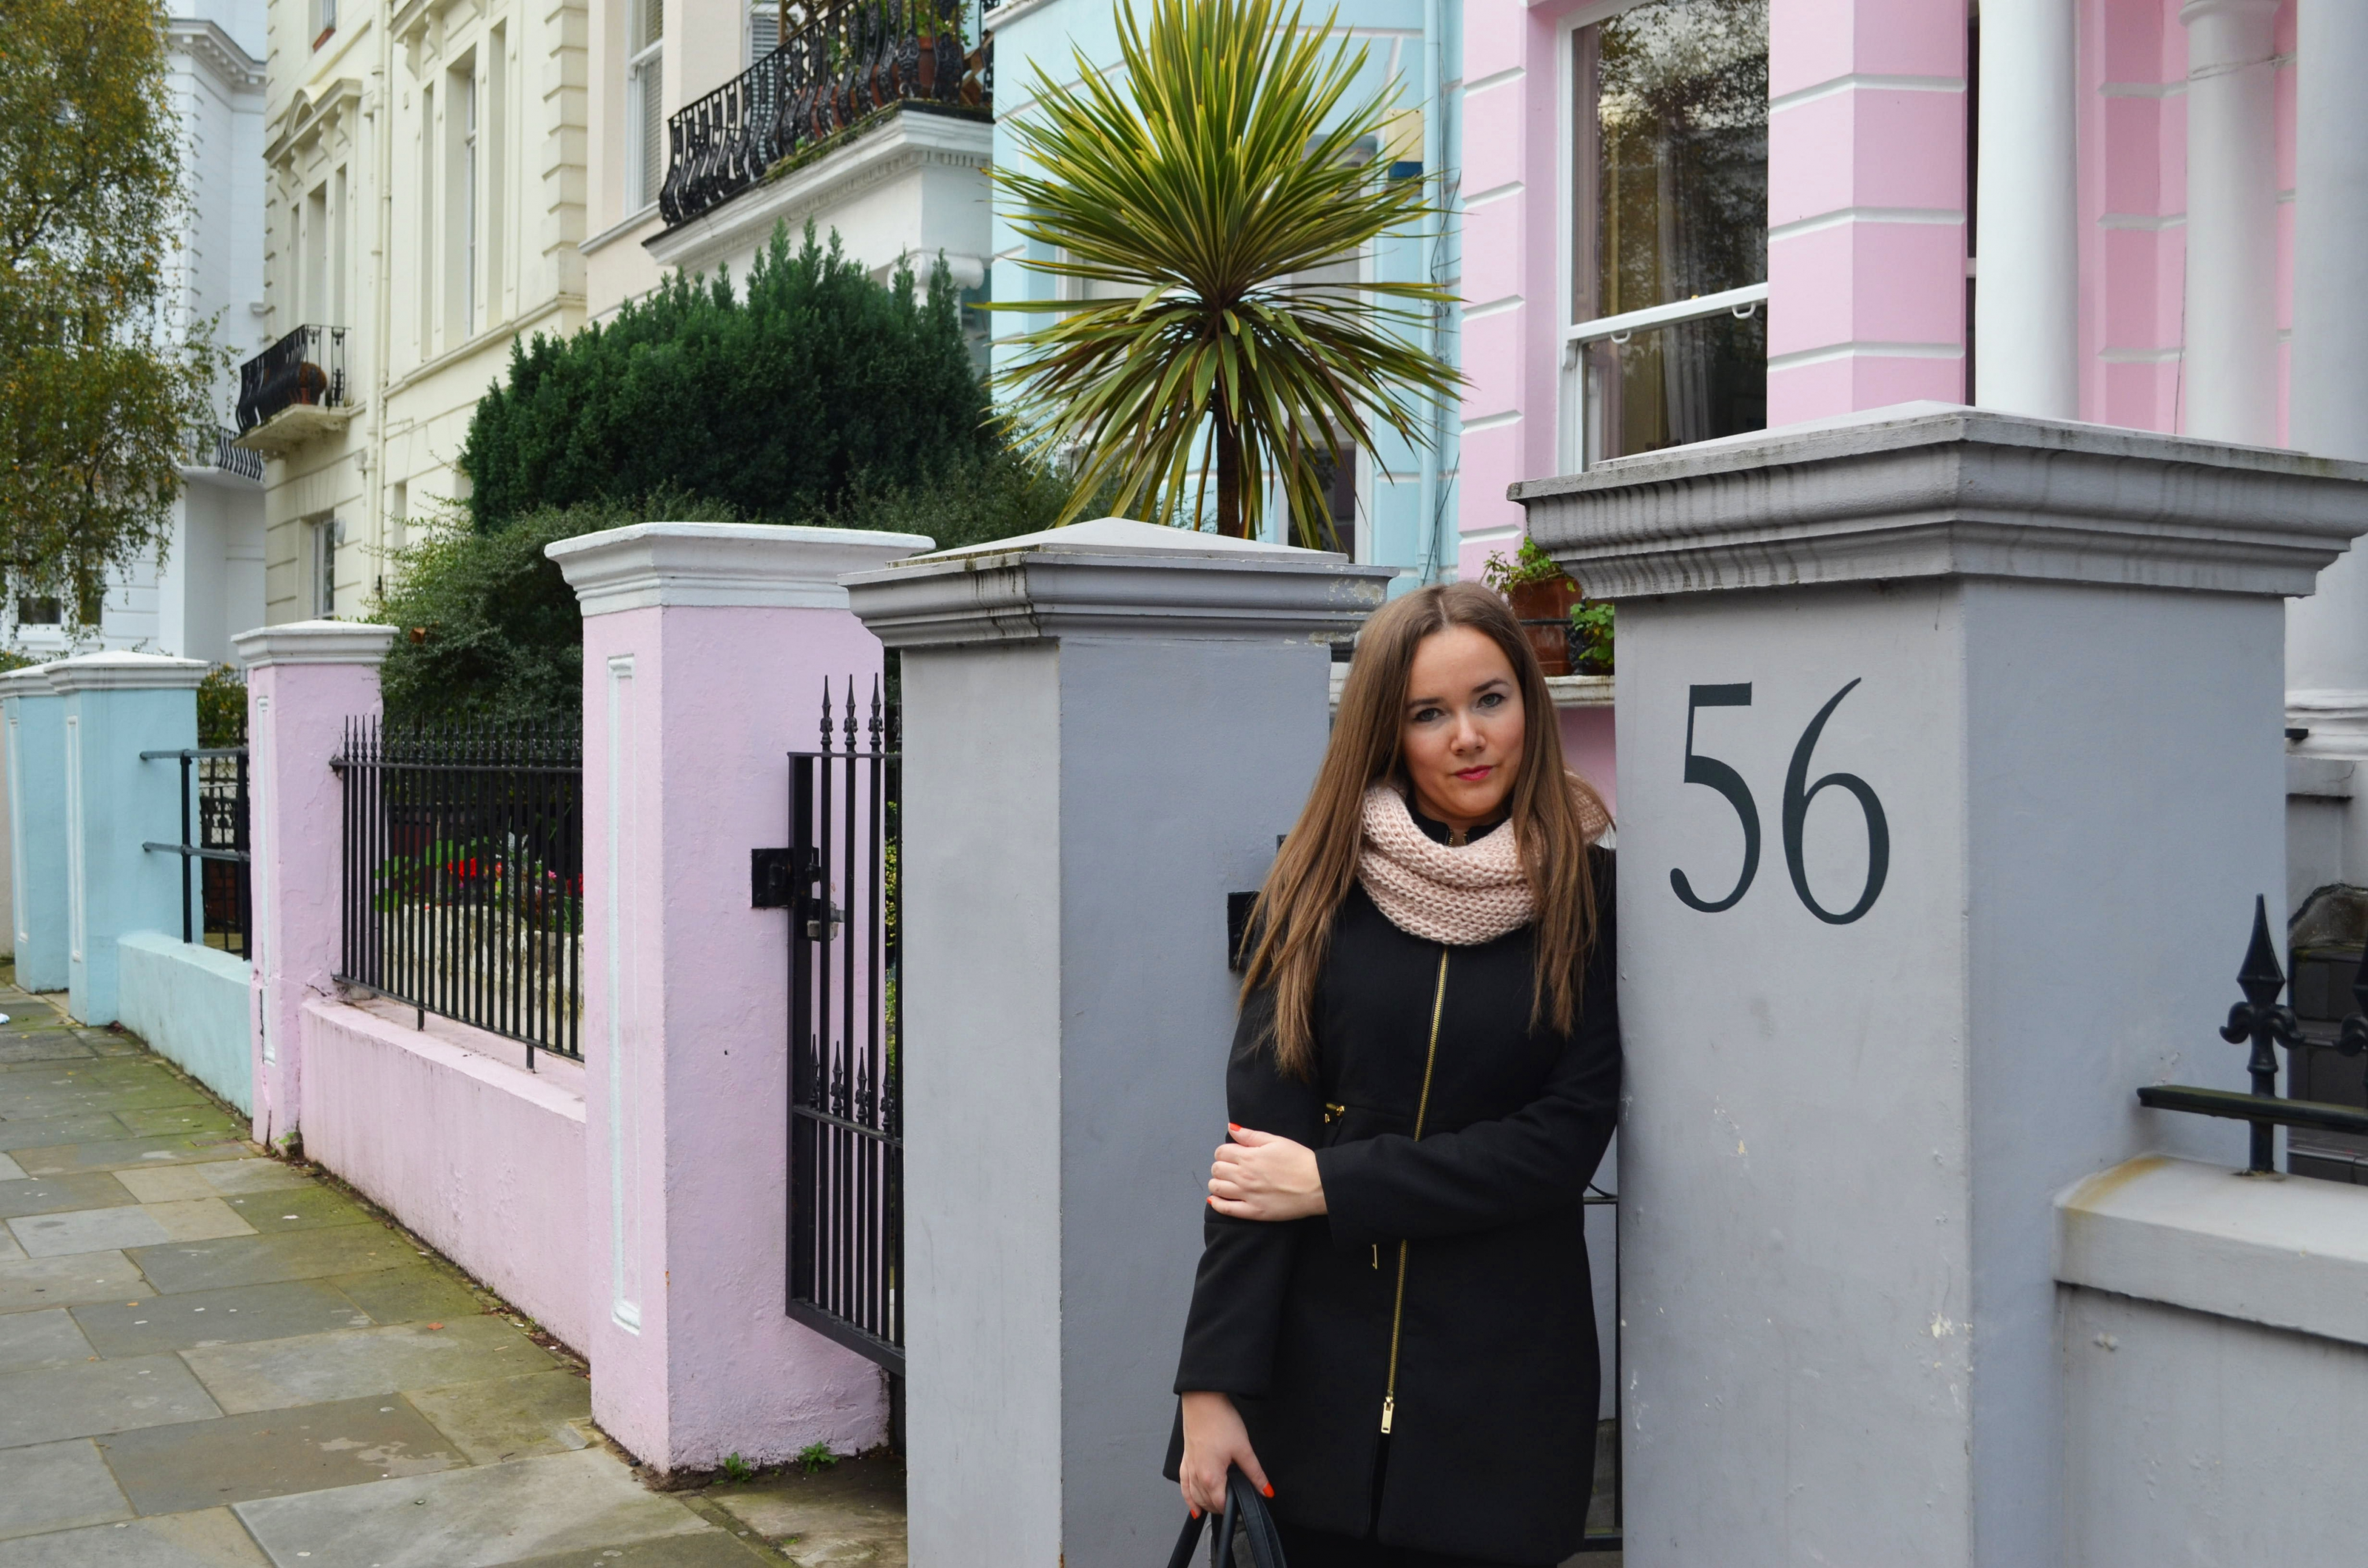 Notting Hill!